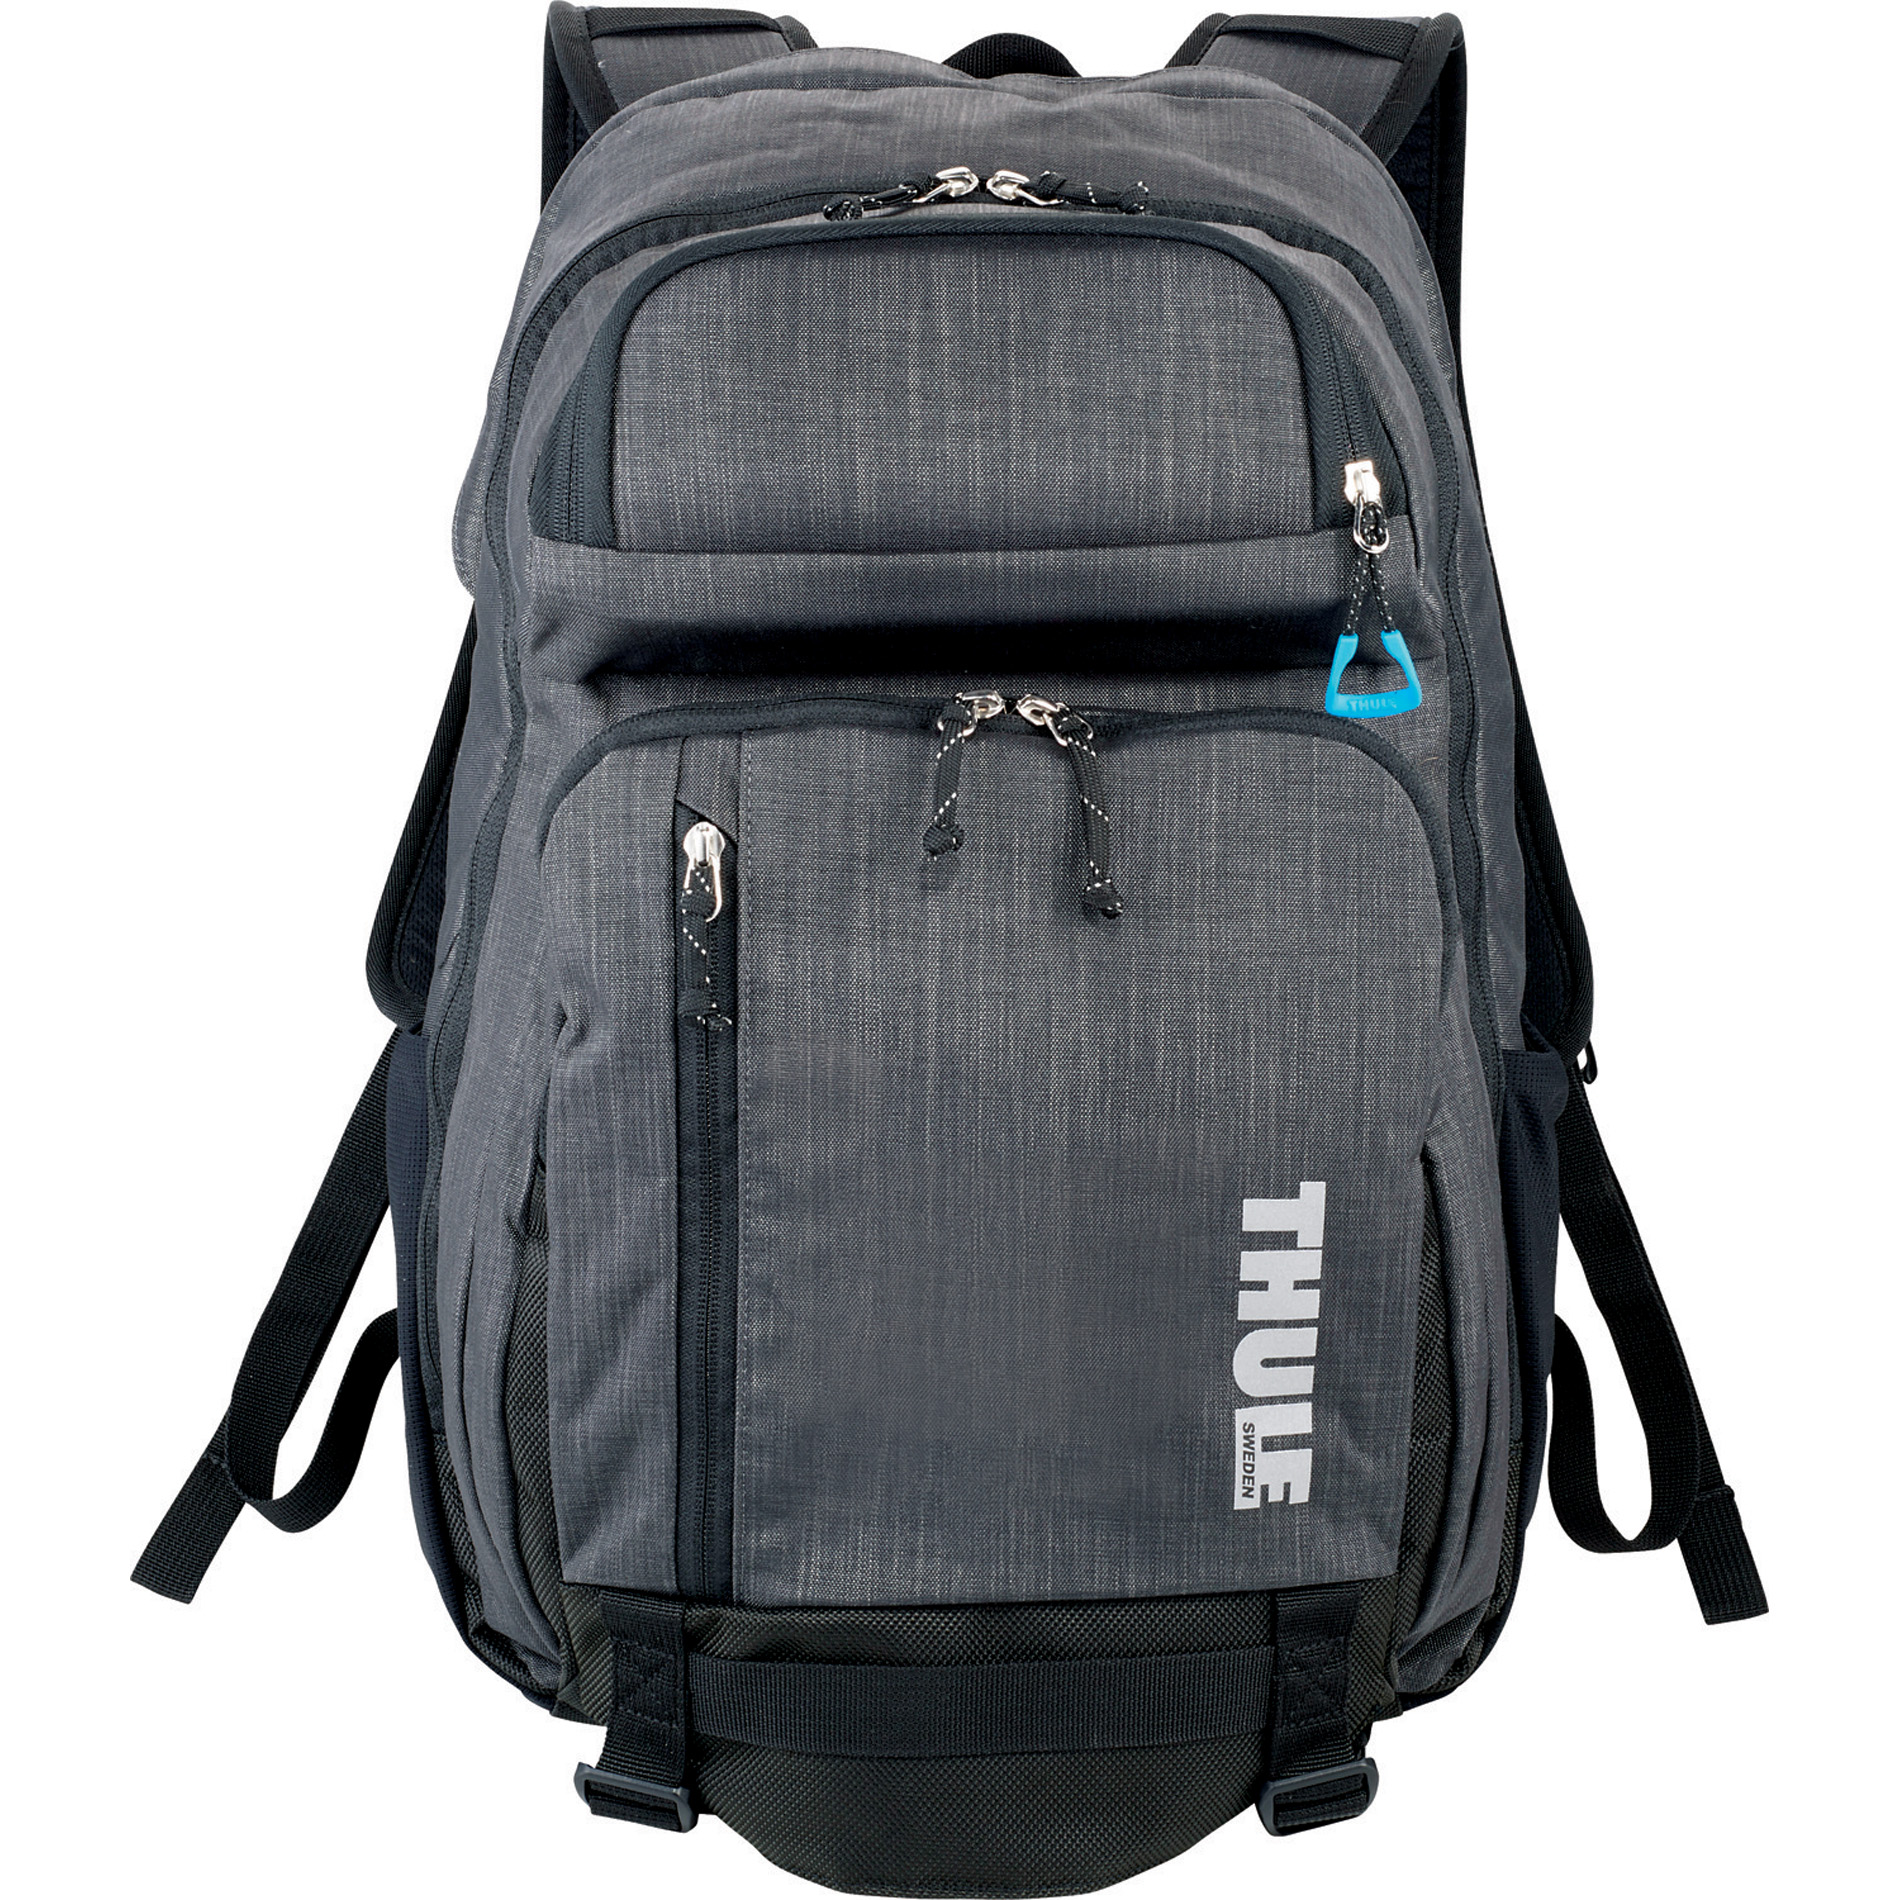 "Thule 9020-10 - Stravan 15"" Laptop Backpack"